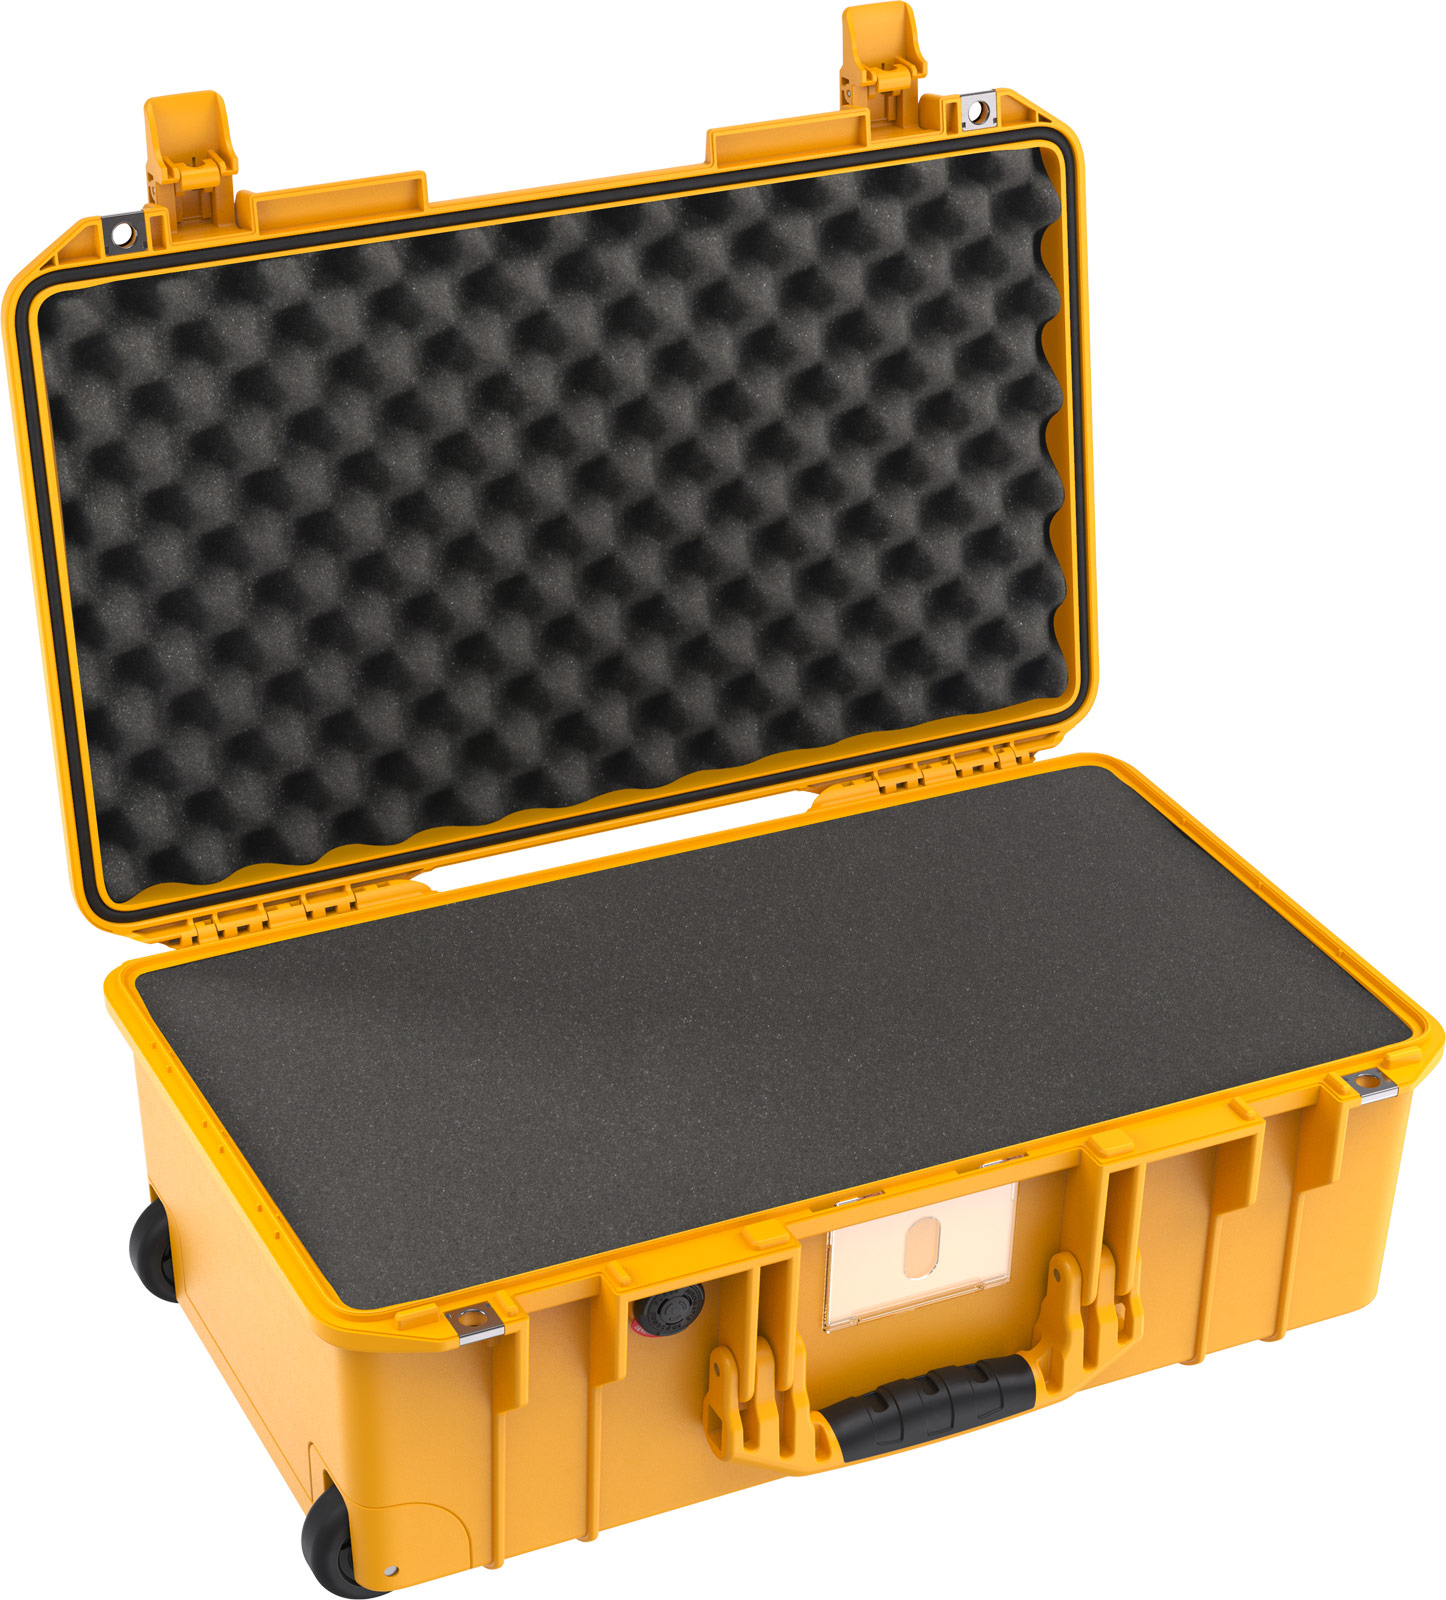 buy pelican air 1535 shop yellow foam lightweight case